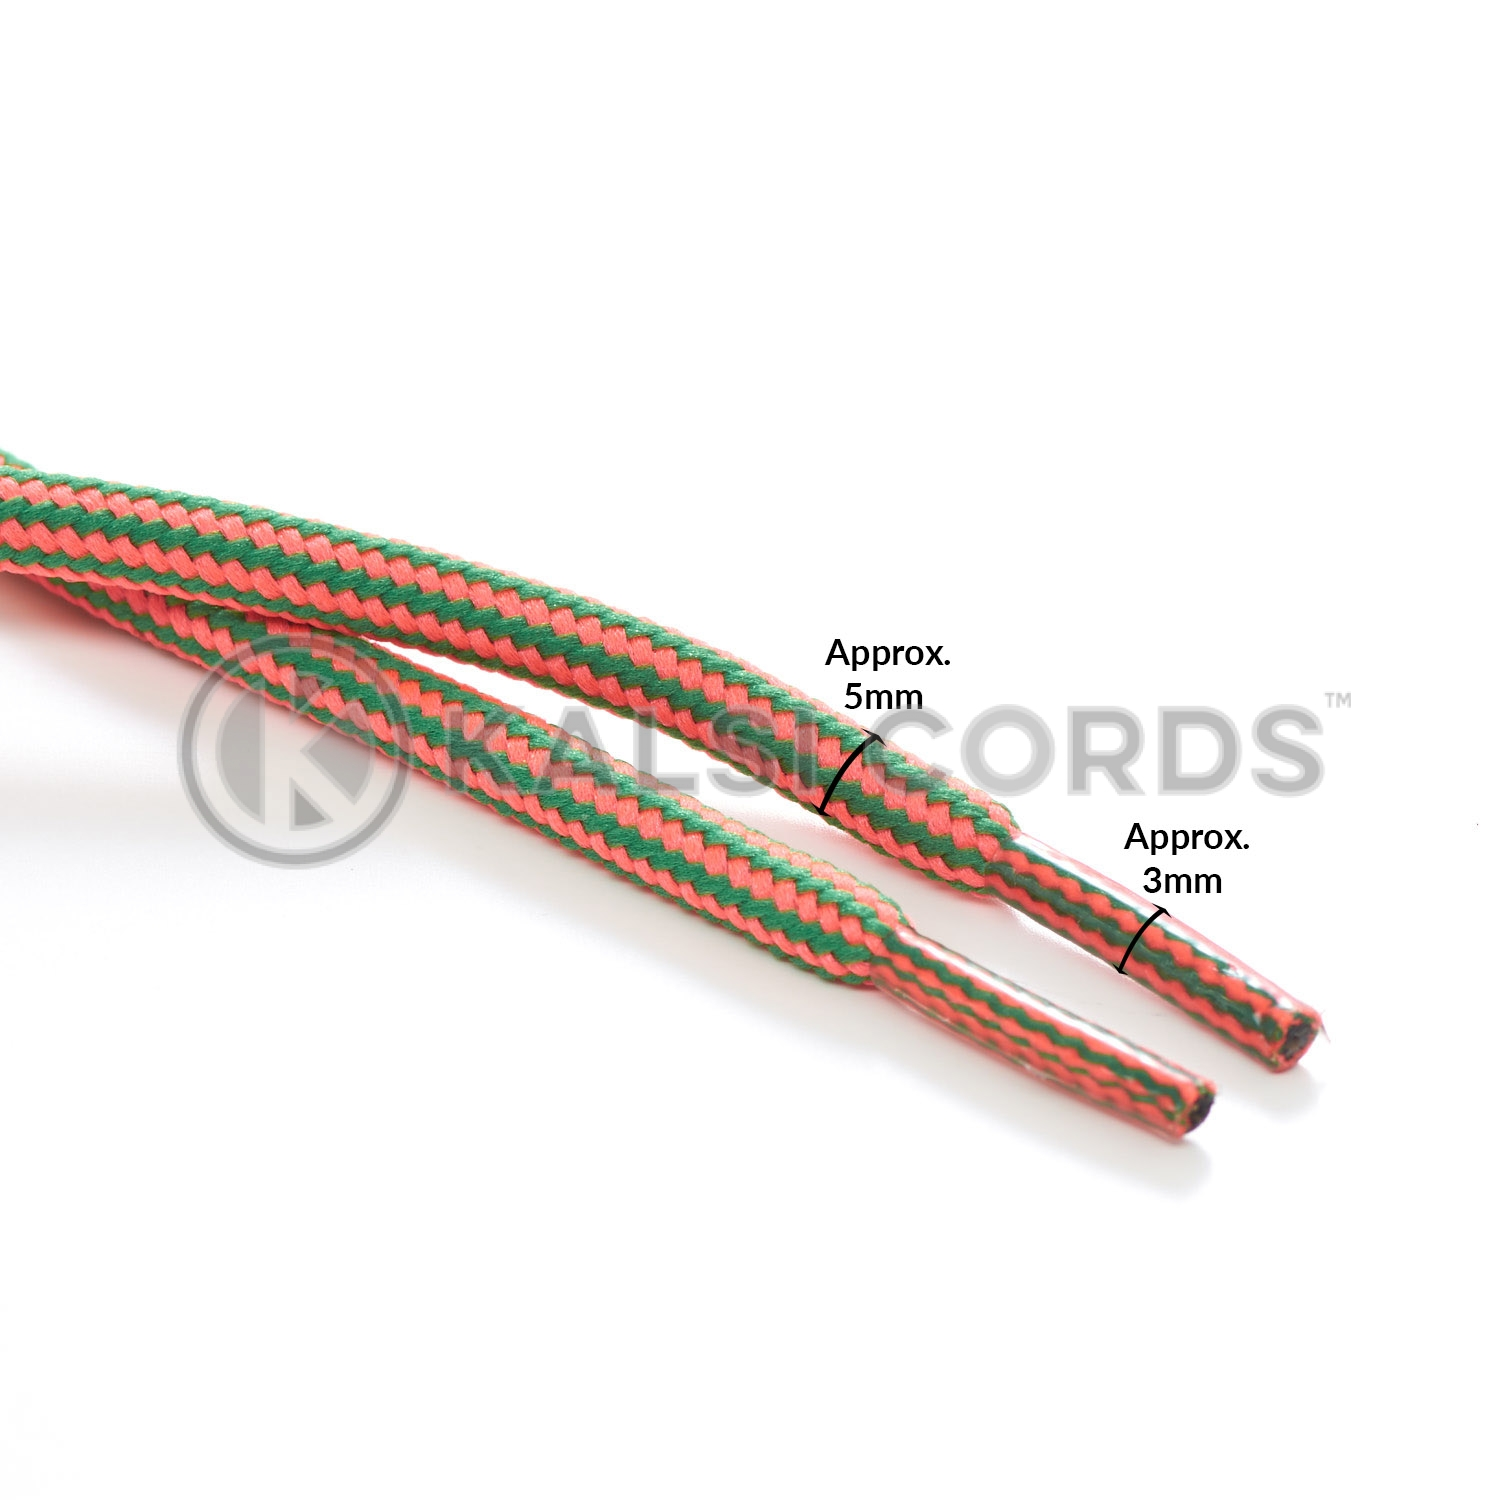 T621 5mm Round Cord Stripe Shoe Laces Fluorescent Pink Emerald Green Kids Trainers Adults Hiking Walking Boots Kalsi Cords